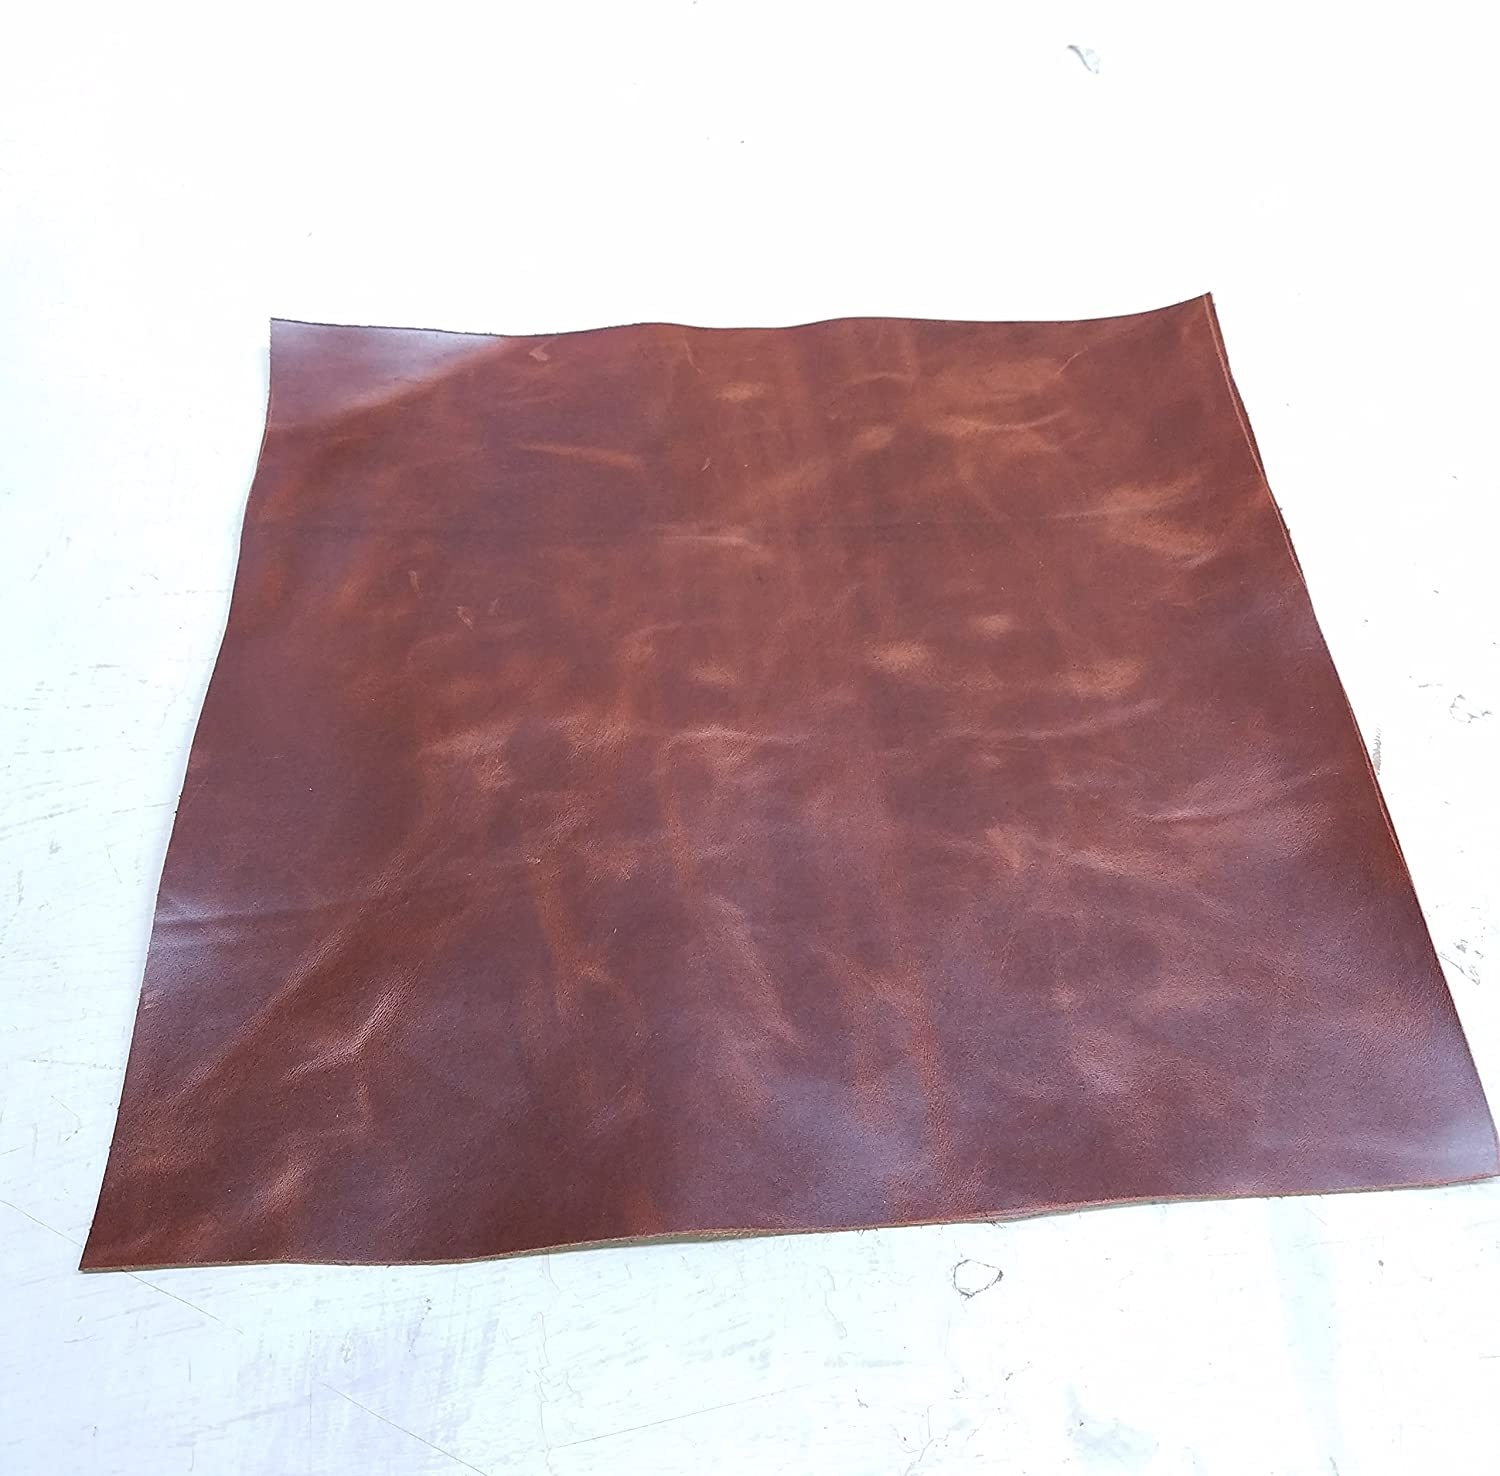 NAT Leathers Tan Brown Oil Pull-up 10 Square Feet Nappa Soft Upholstery Handbag Cowhide Genuine Cow Leather Hide Skin 7-10 Sq.ft